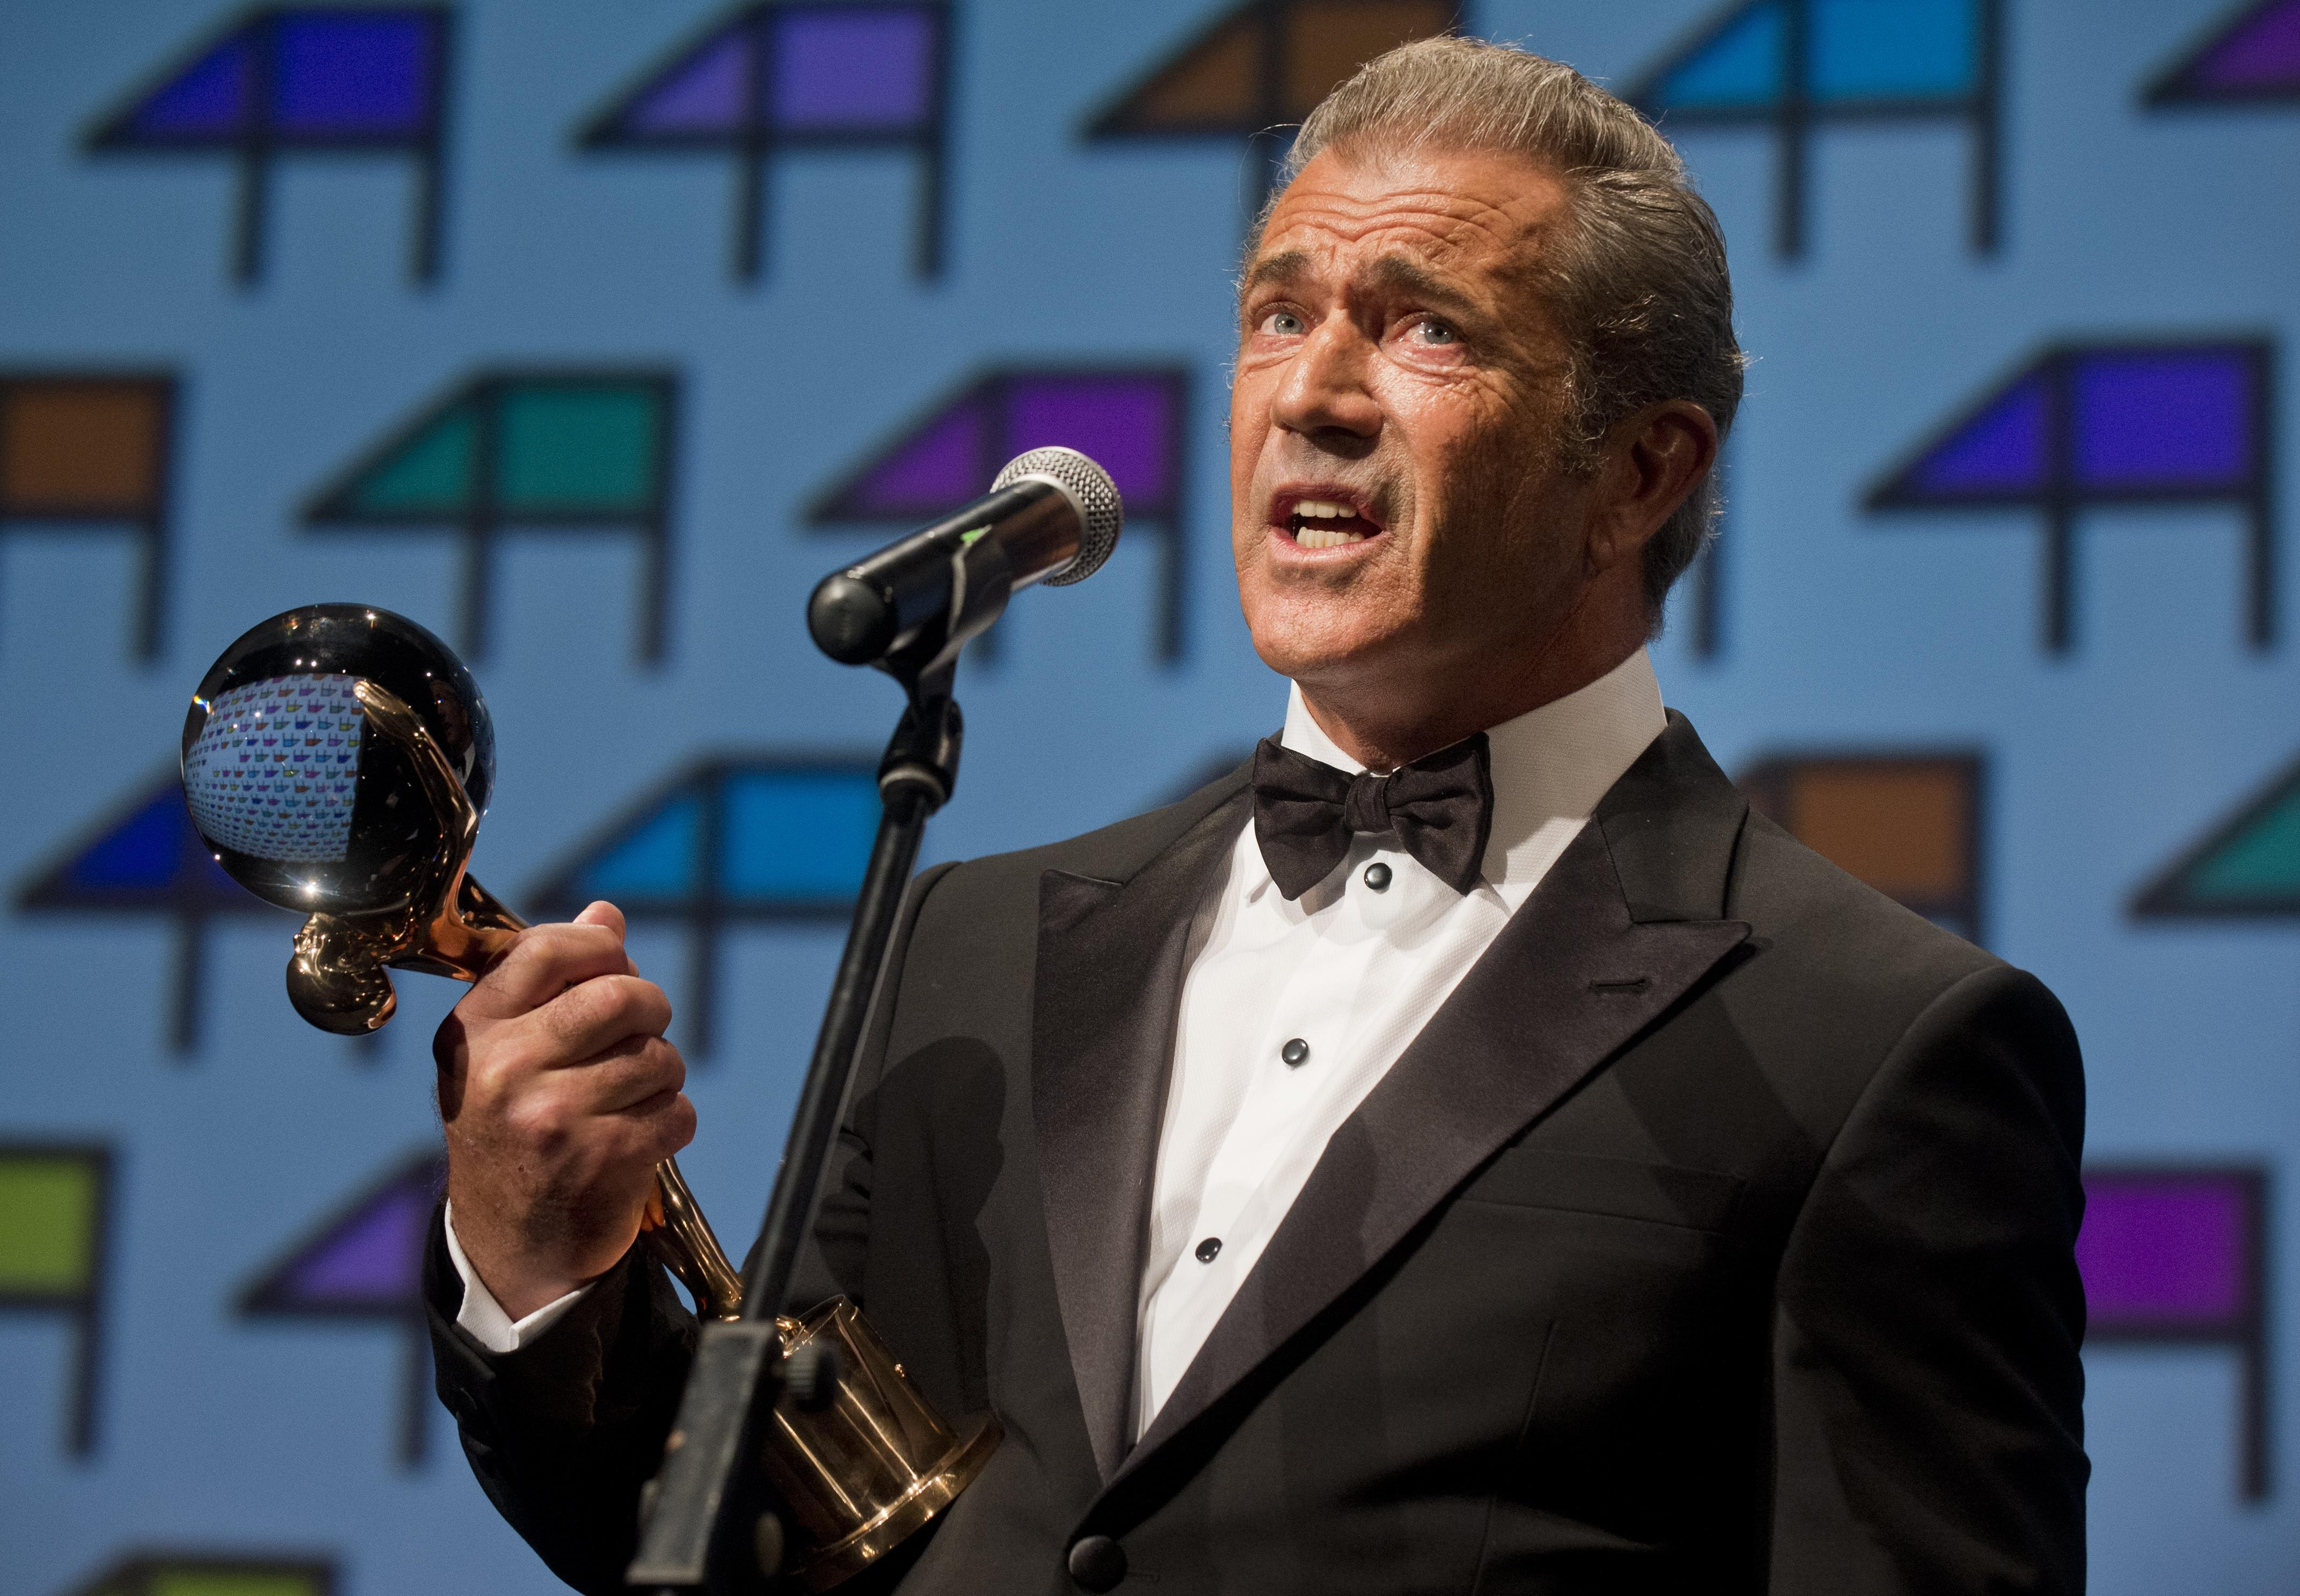 Global recognition: Hollywood actor, director and producer Mel Gibson accepts the Crystal Globe for Outstanding Artistic Contribution to World Cinema at the 49th Karlovy Vary International Film Festival in Bohemia on Friday.